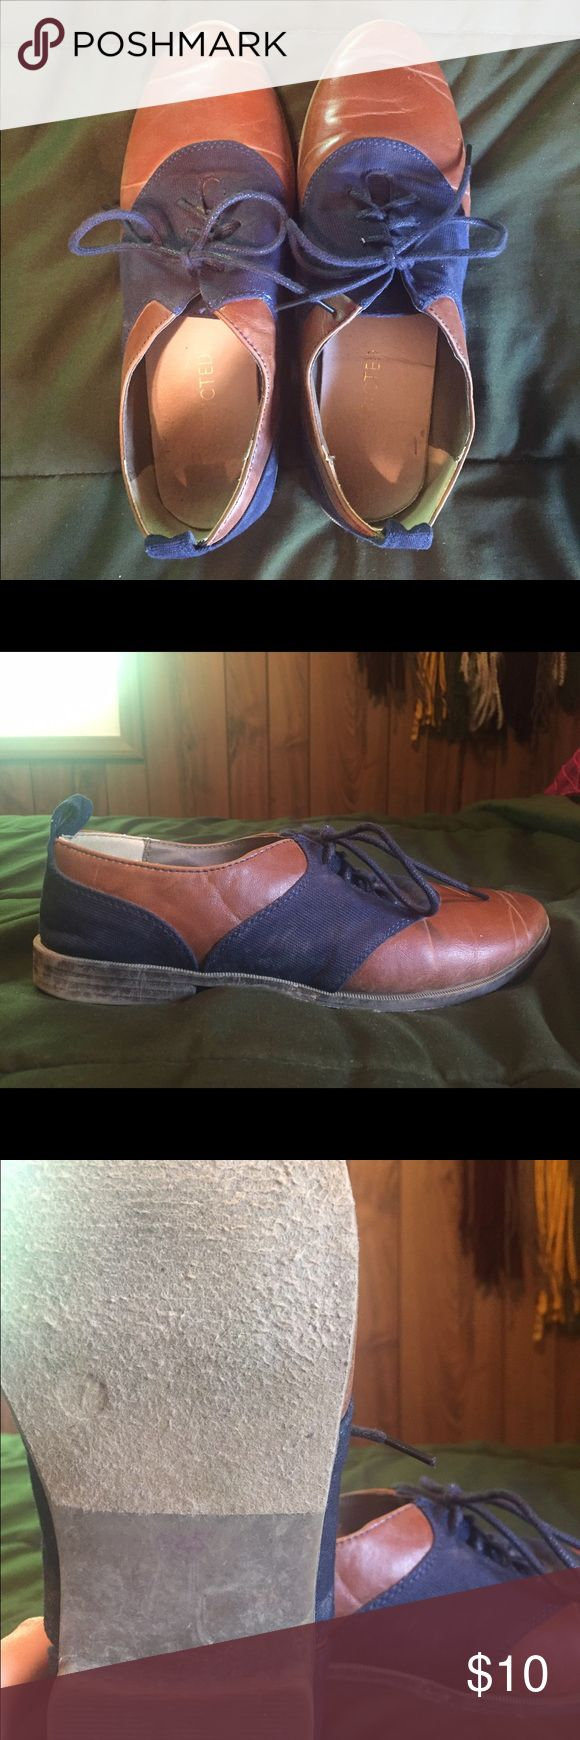 blue and brown flats/saddle shoes super cute and comfy saddle shoes! they look adorable with jeans or a skirt. Size 7 Restricted Shoes Flats & Loafers